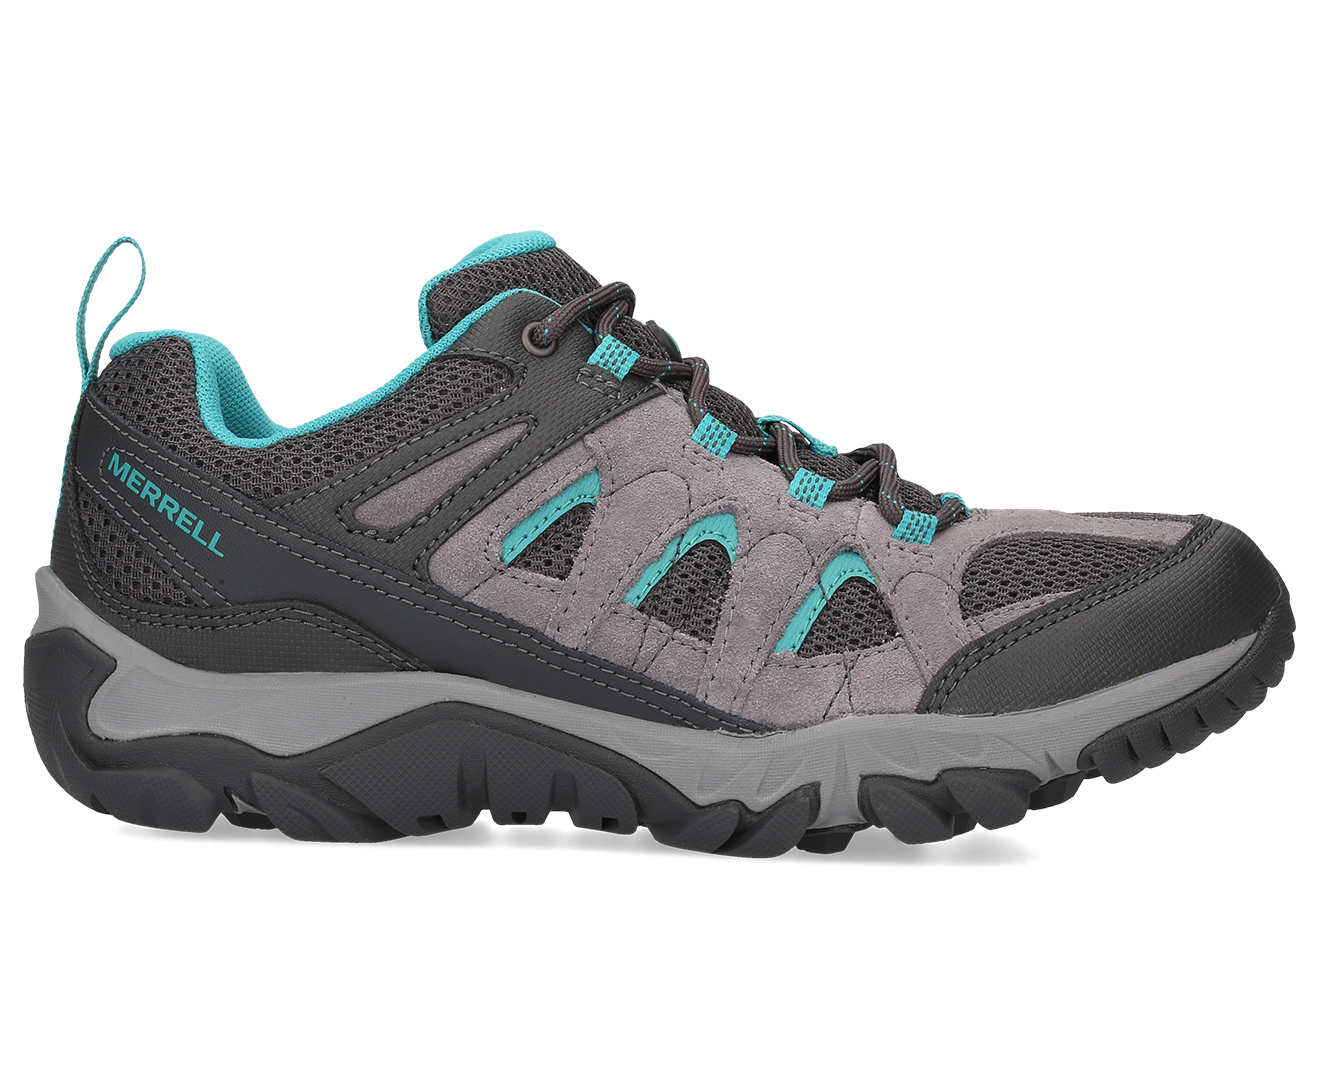 6f6bfceae40 Details about Merrell Women's Outmost Ventilator Shoe - Frost Grey